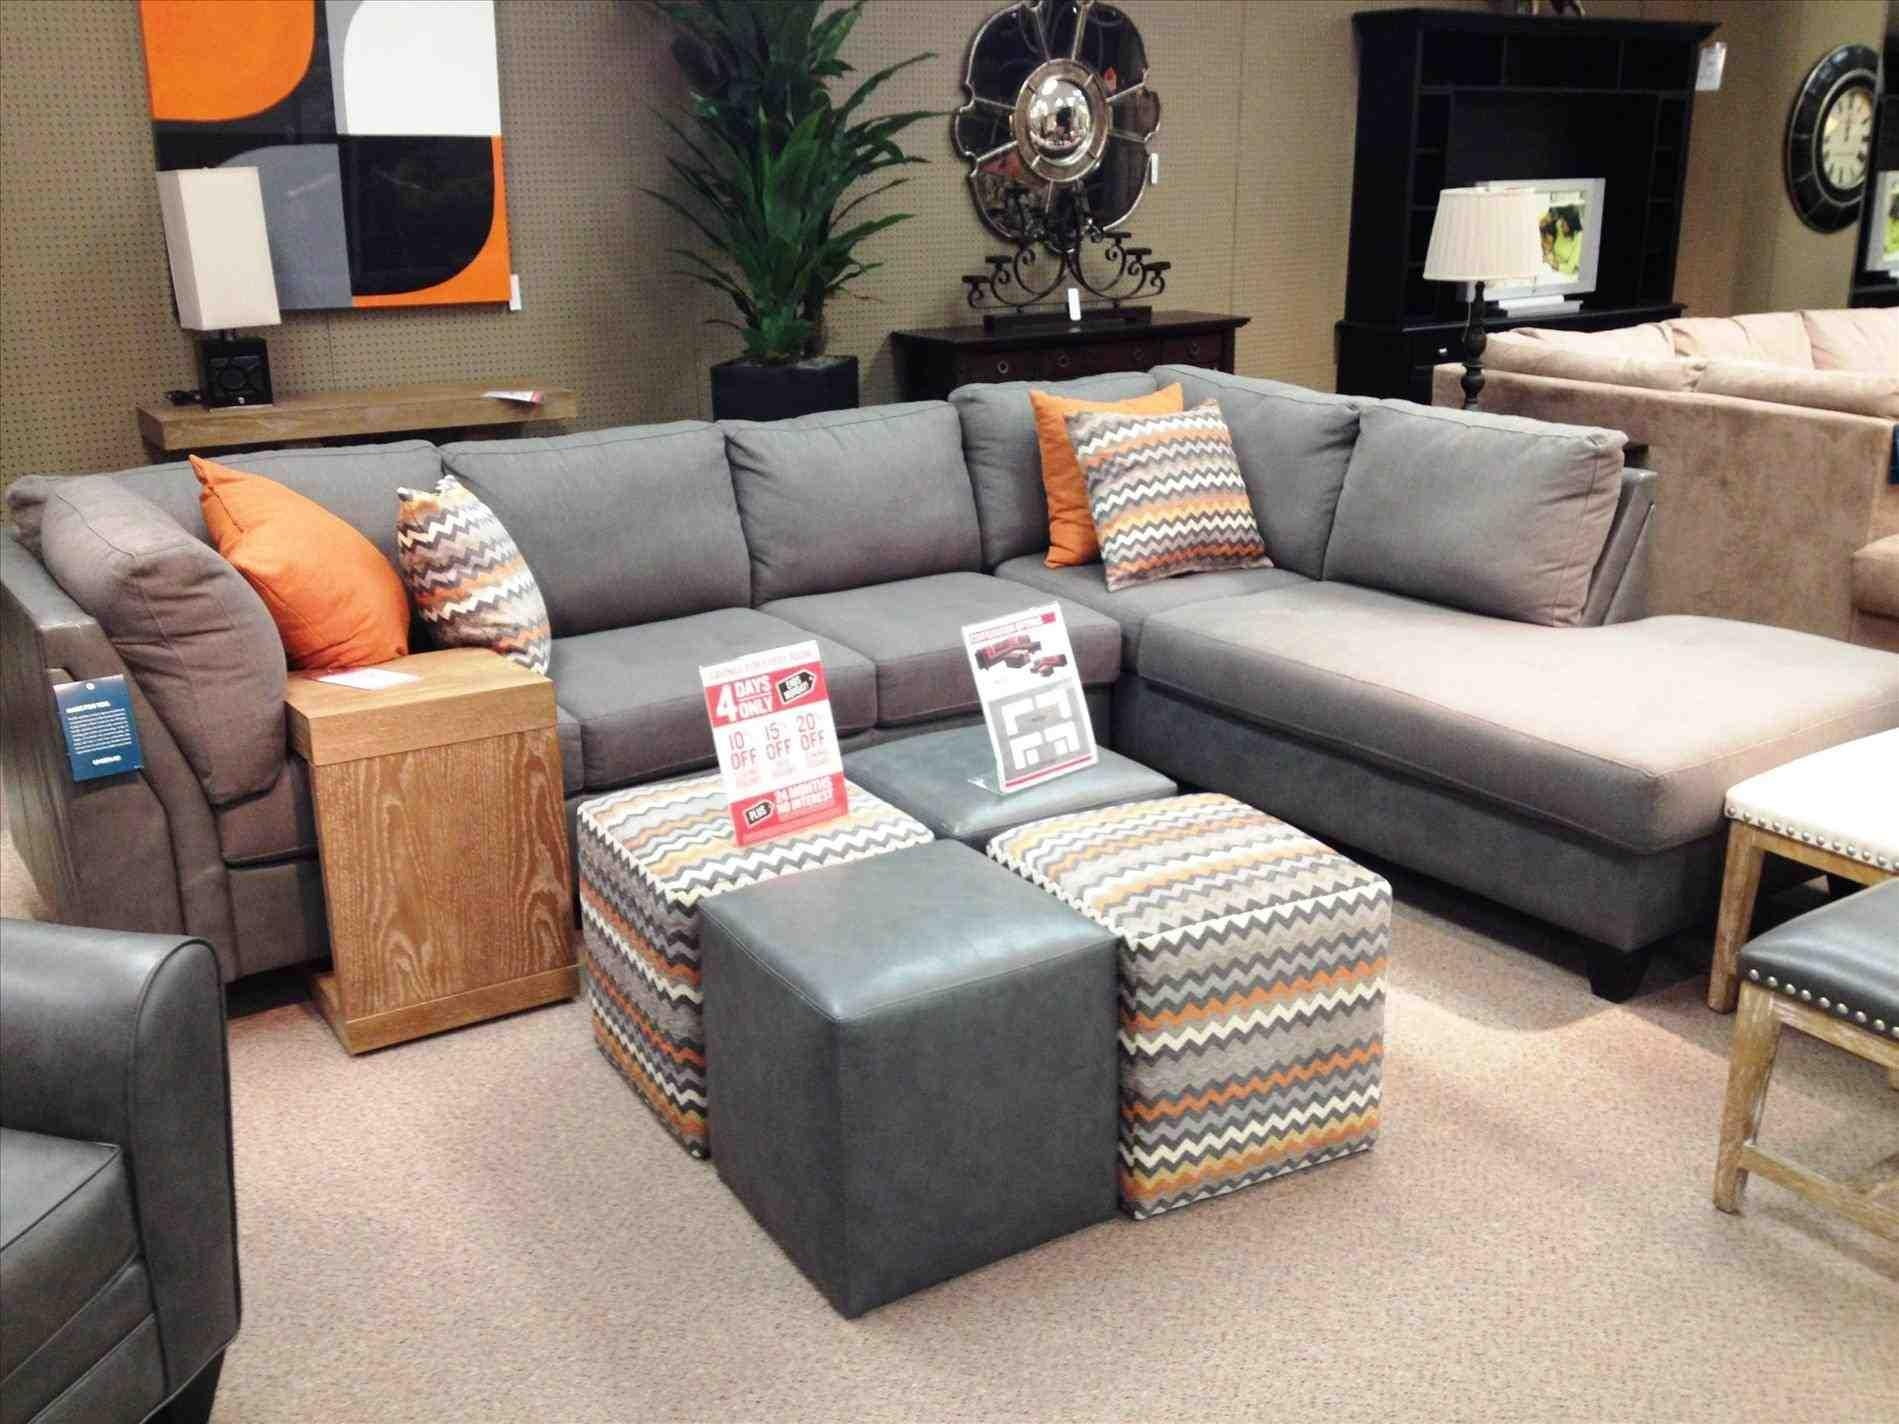 Macys Sectional Sofa – In The Living With Macys Sectional (Image 10 of 20)